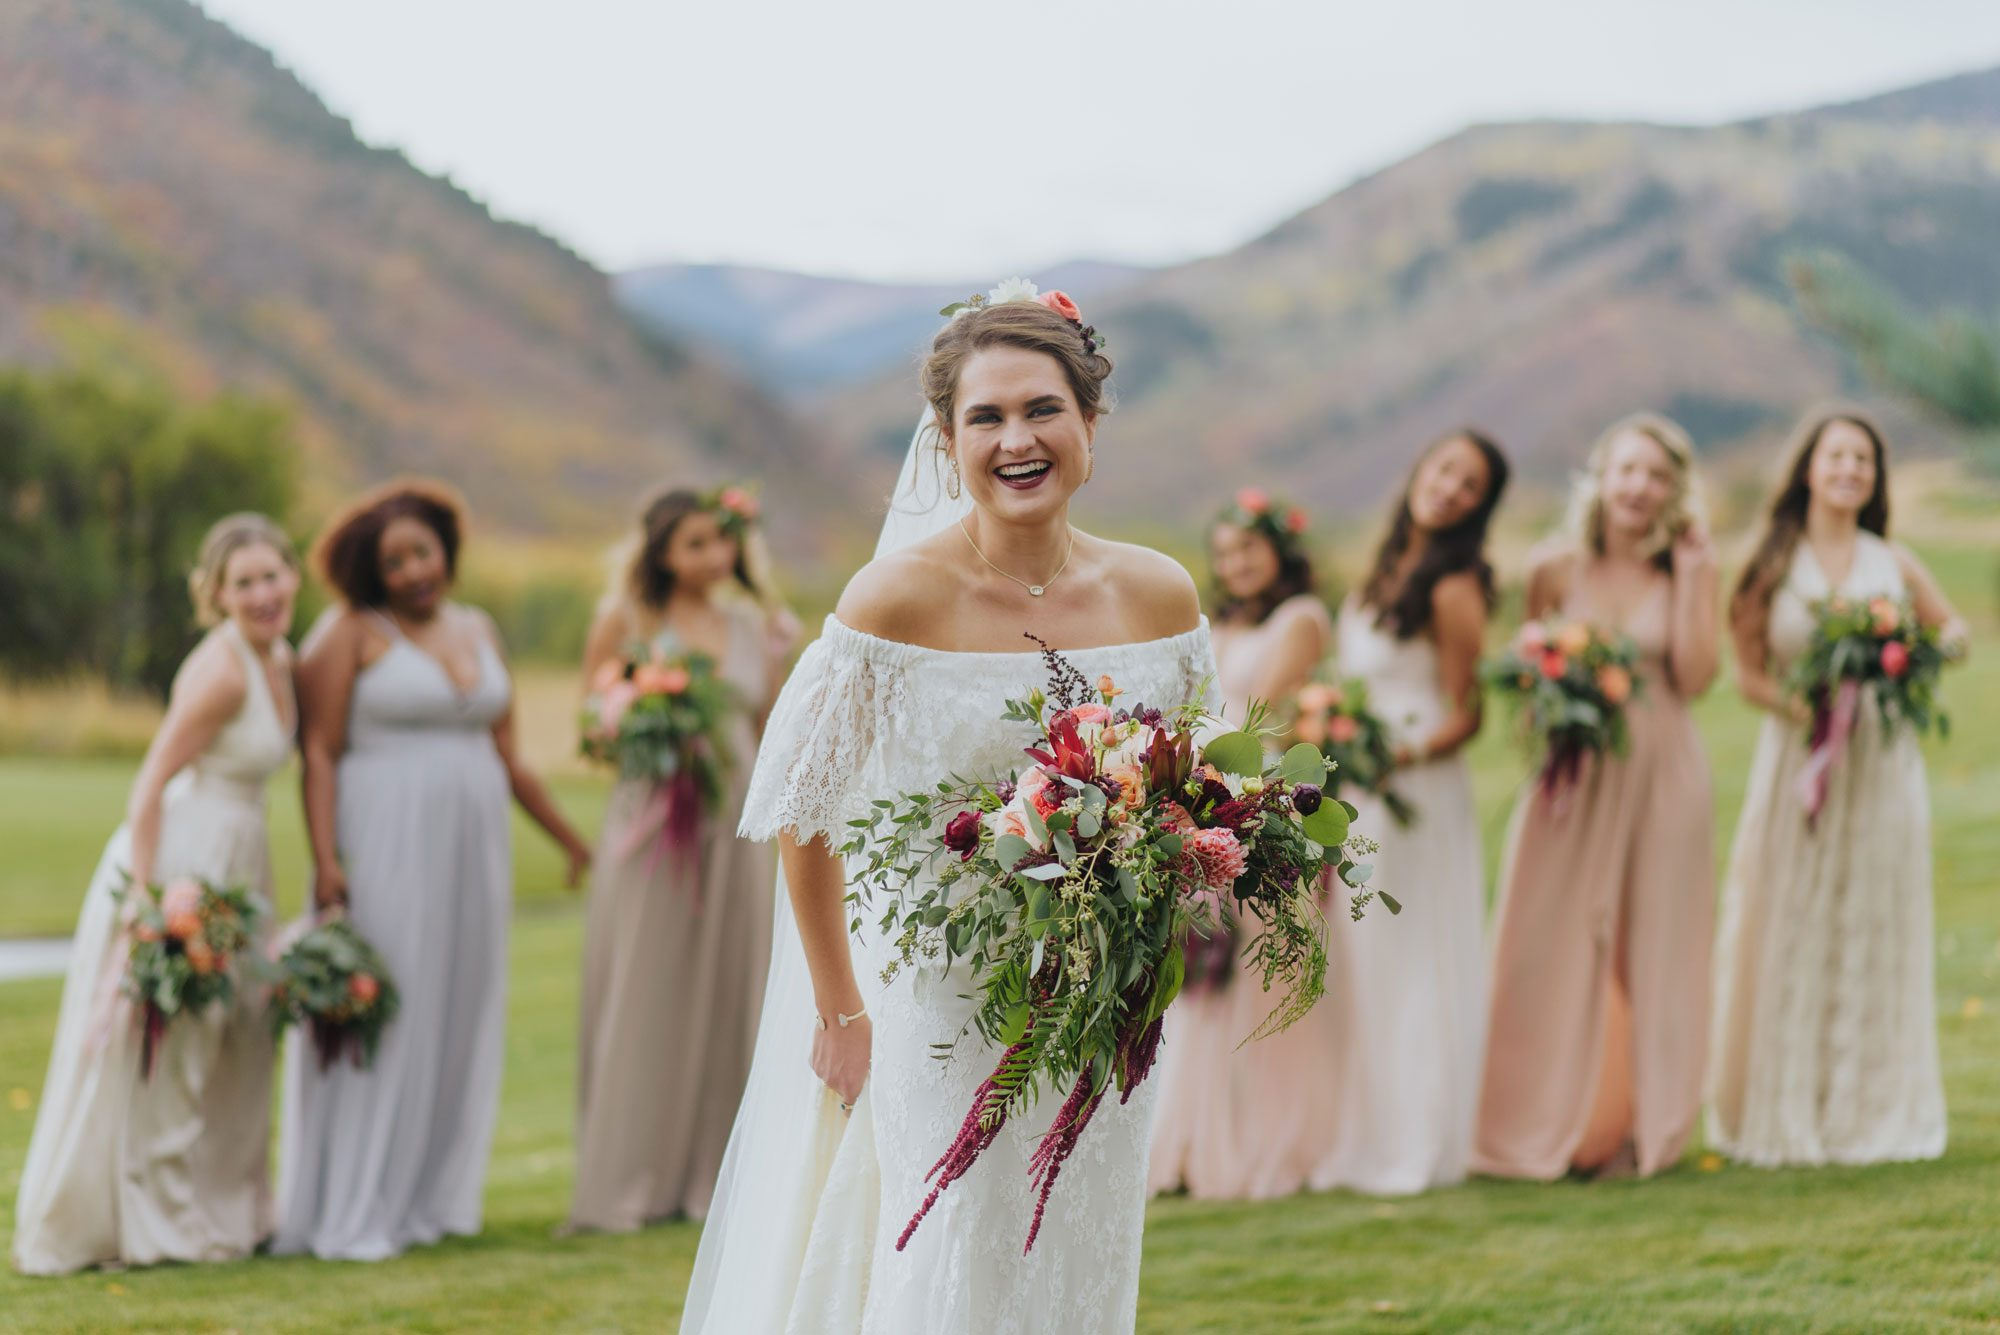 Bride Tribe | Rocky Mountain wedding in Eagle, Colorado